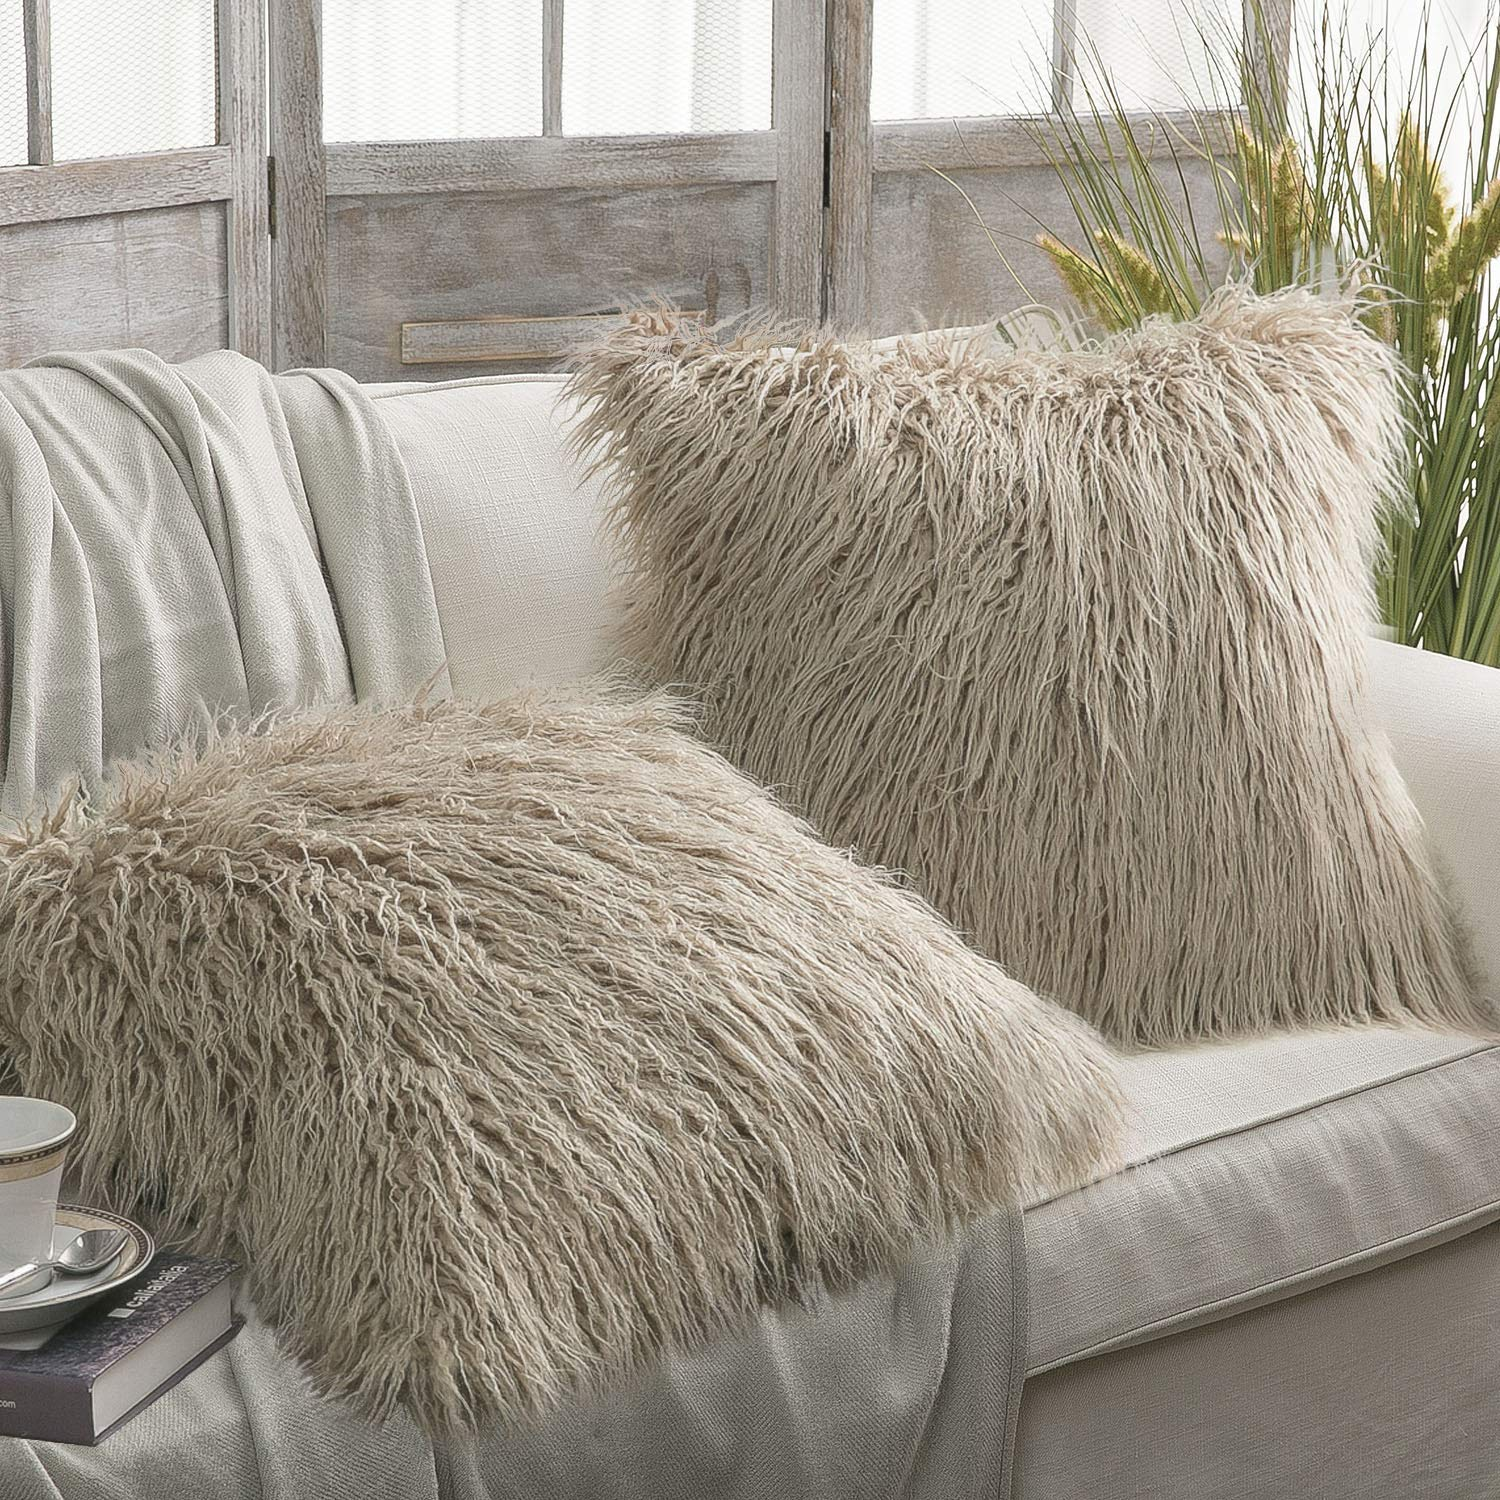 "Phantoscope Set of 2 Throw pillow Covers Faux Fur Phantoscope Decorative New Luxury Series Merino Style White Color Faux Fur Throw Pillow Case Cushion Cover 18"" x 18""(Pillow Covers Only)"